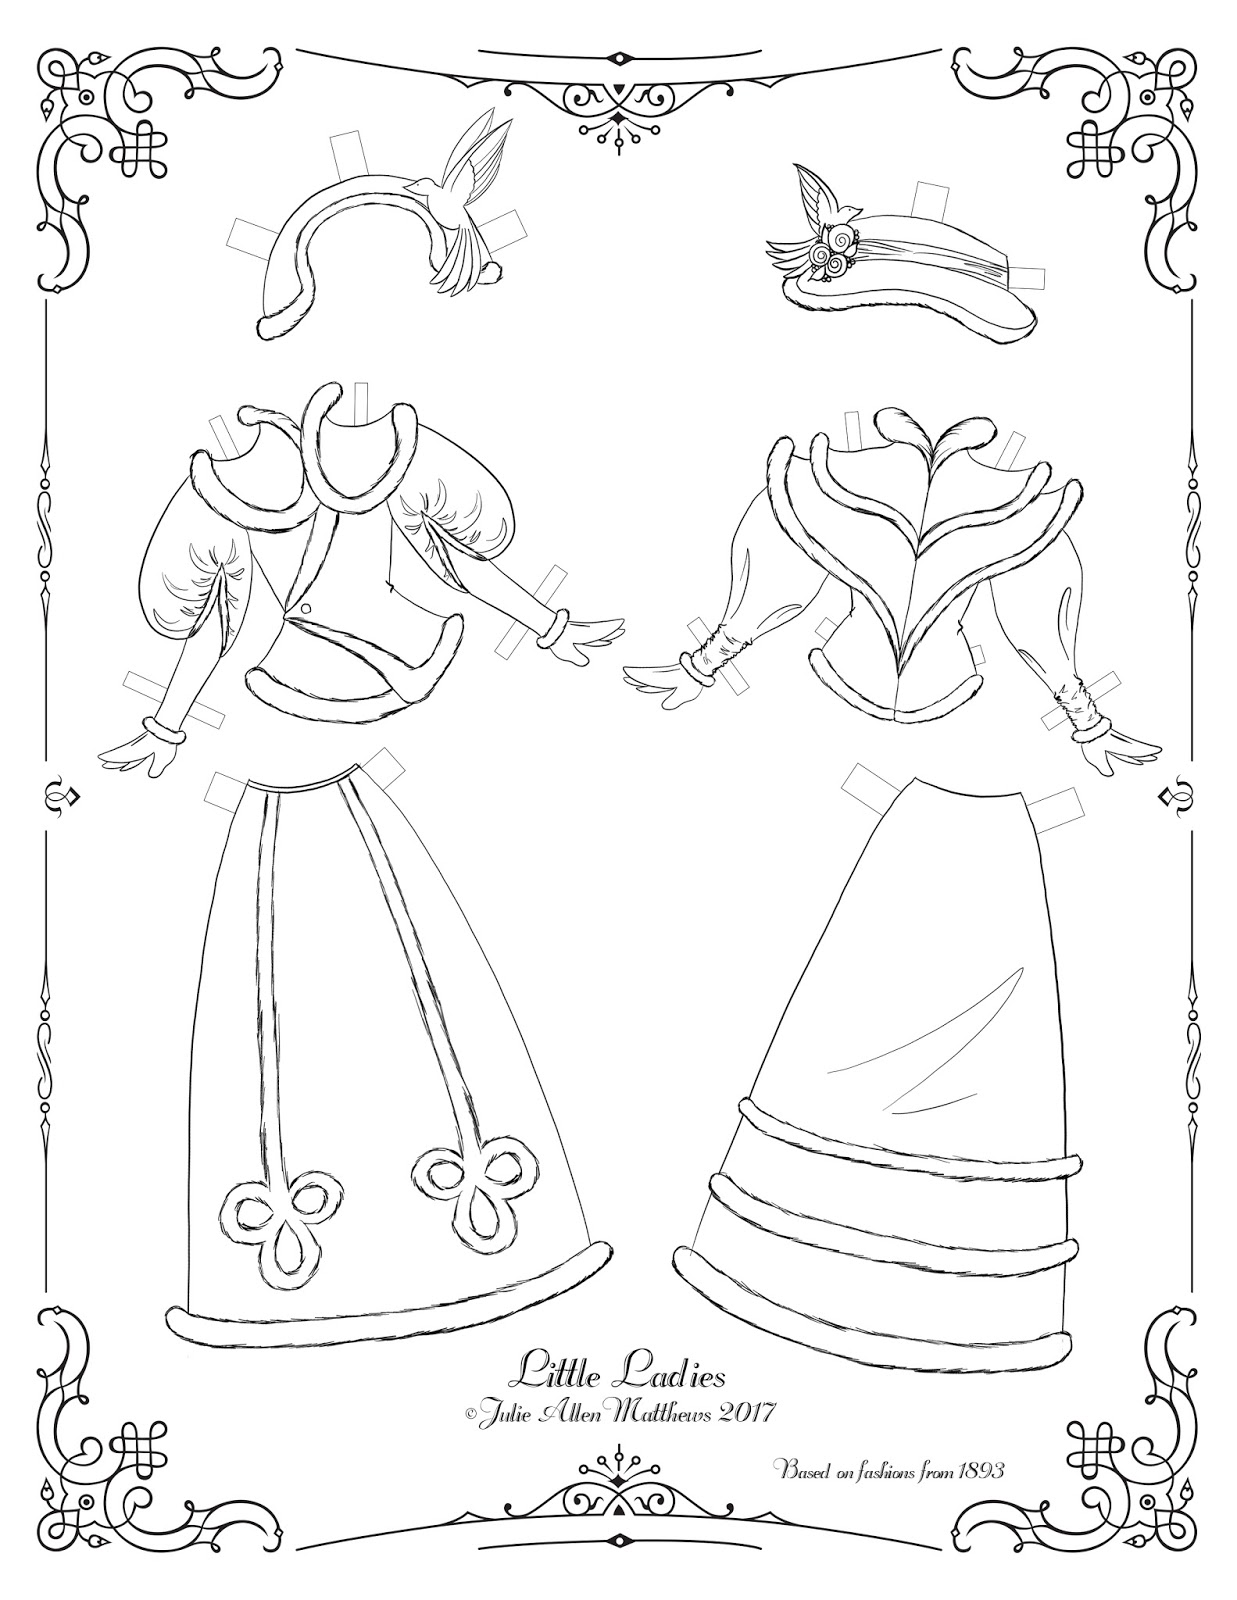 Paper Doll School: Little Ladies: Outfit Sheet 4